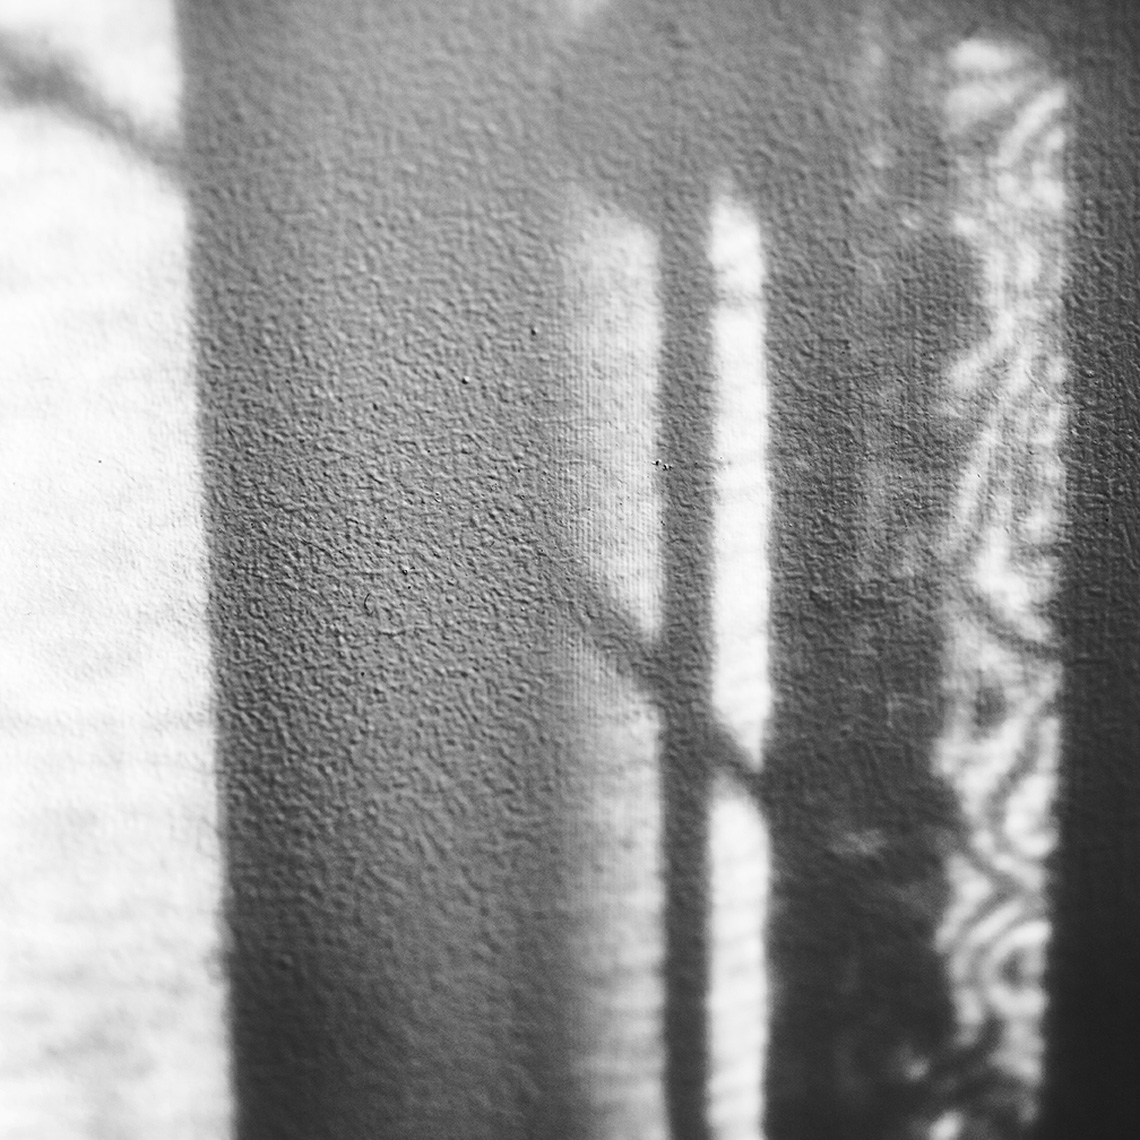 09-15-2016_shadows_on-Painted_wall